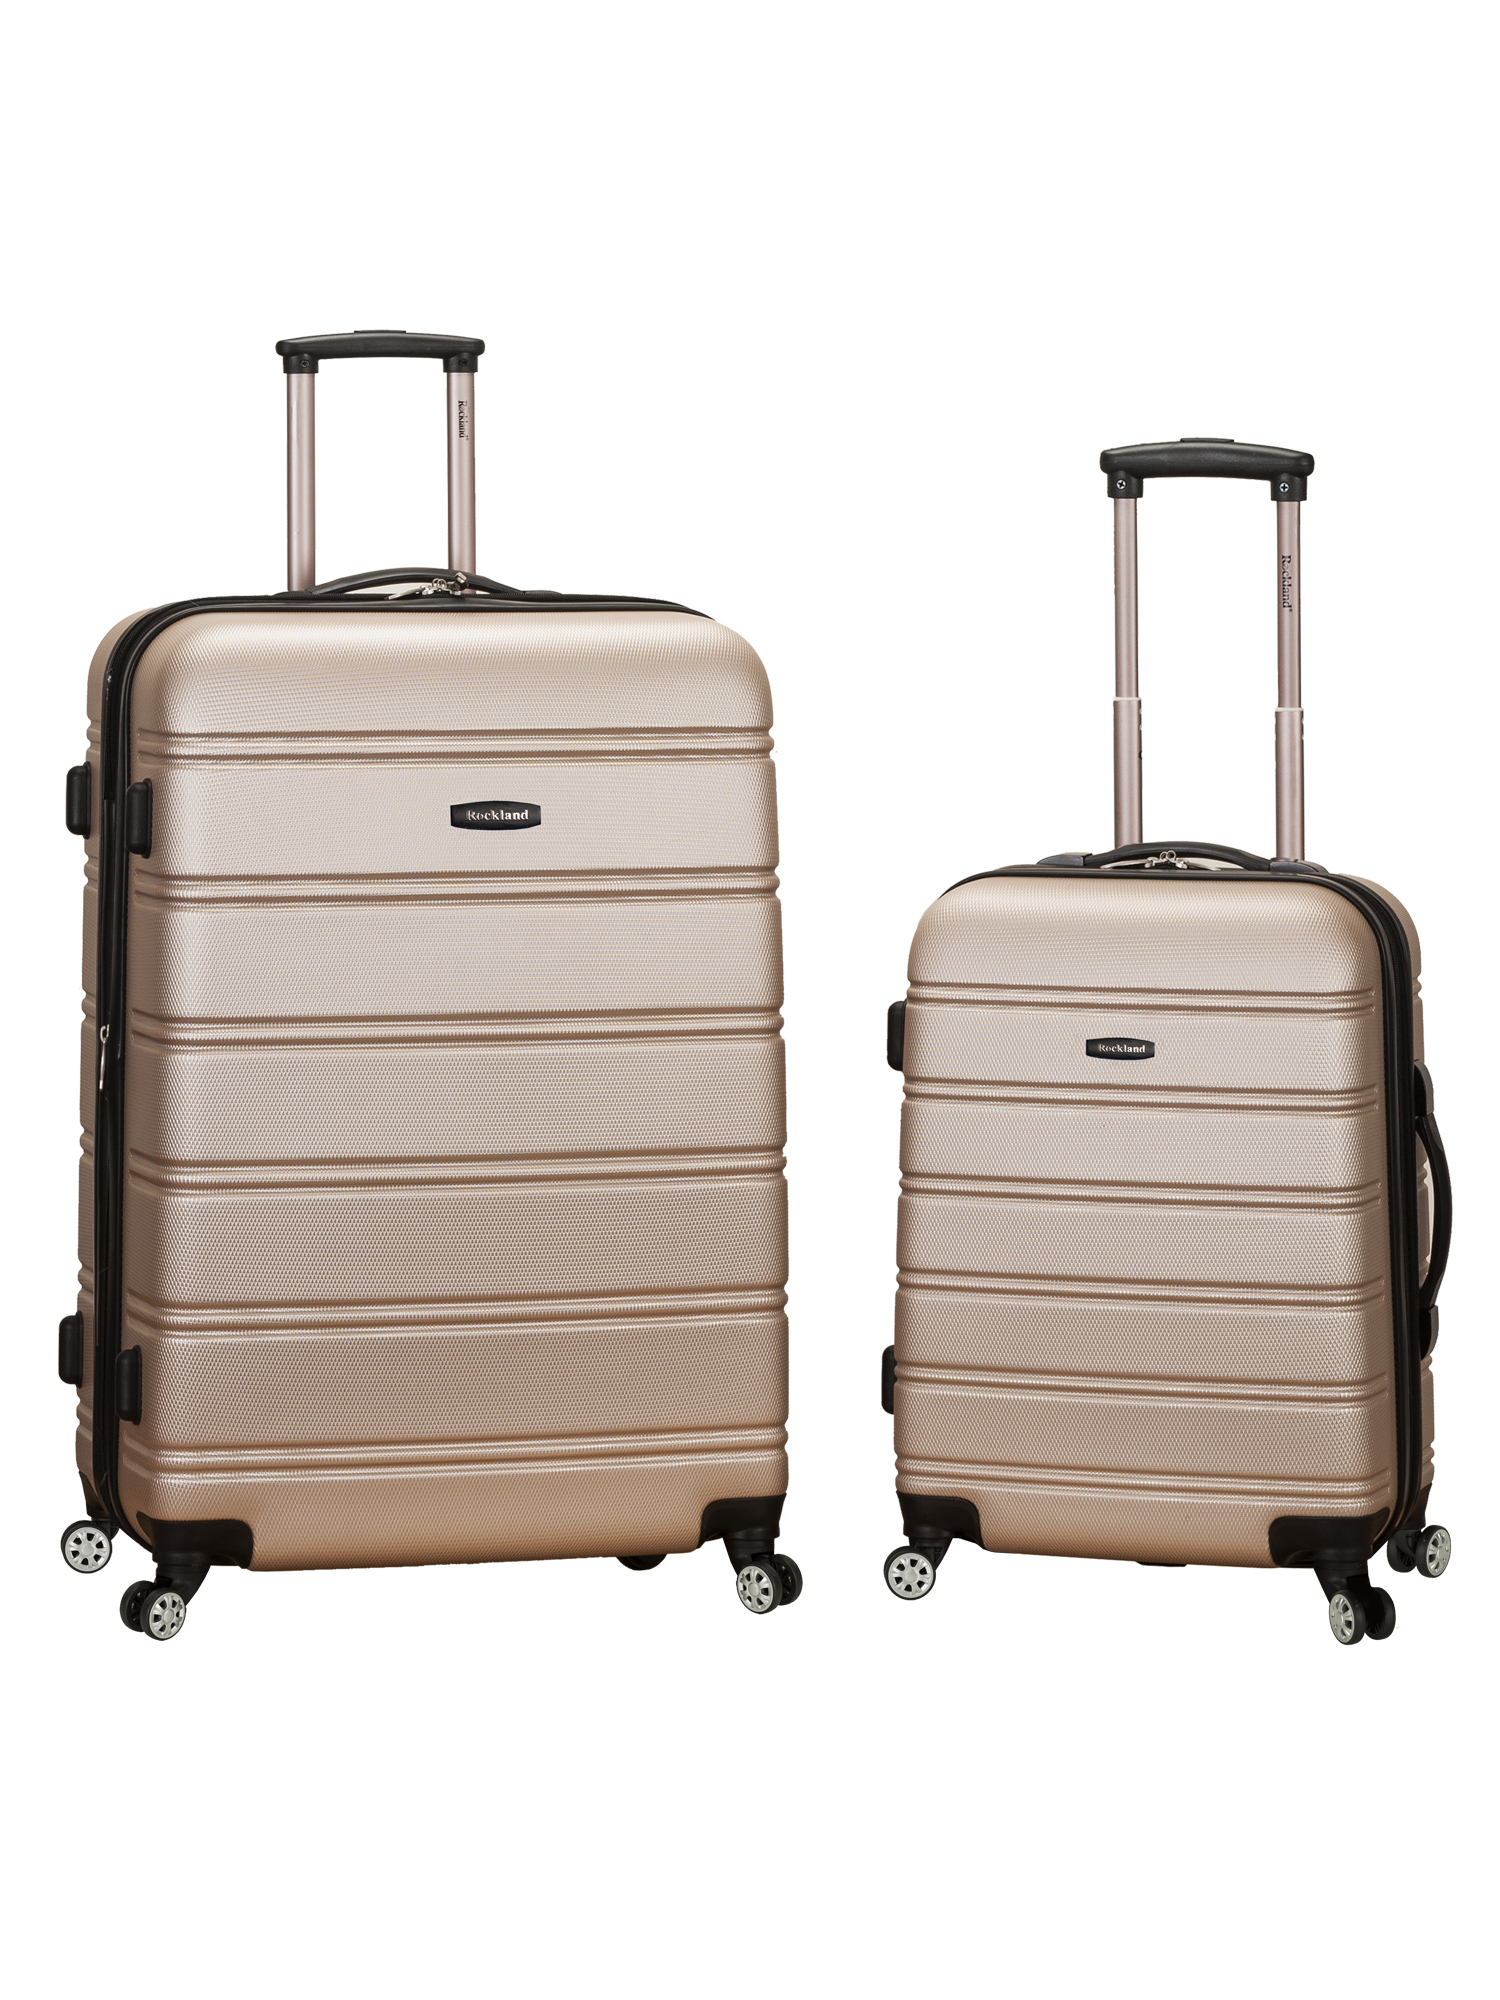 "Rockland Luggage Melbourne F225 Two-Piece Expandable Hardside Spinner Luggage Set (20"" and 28"" Suitcase)"